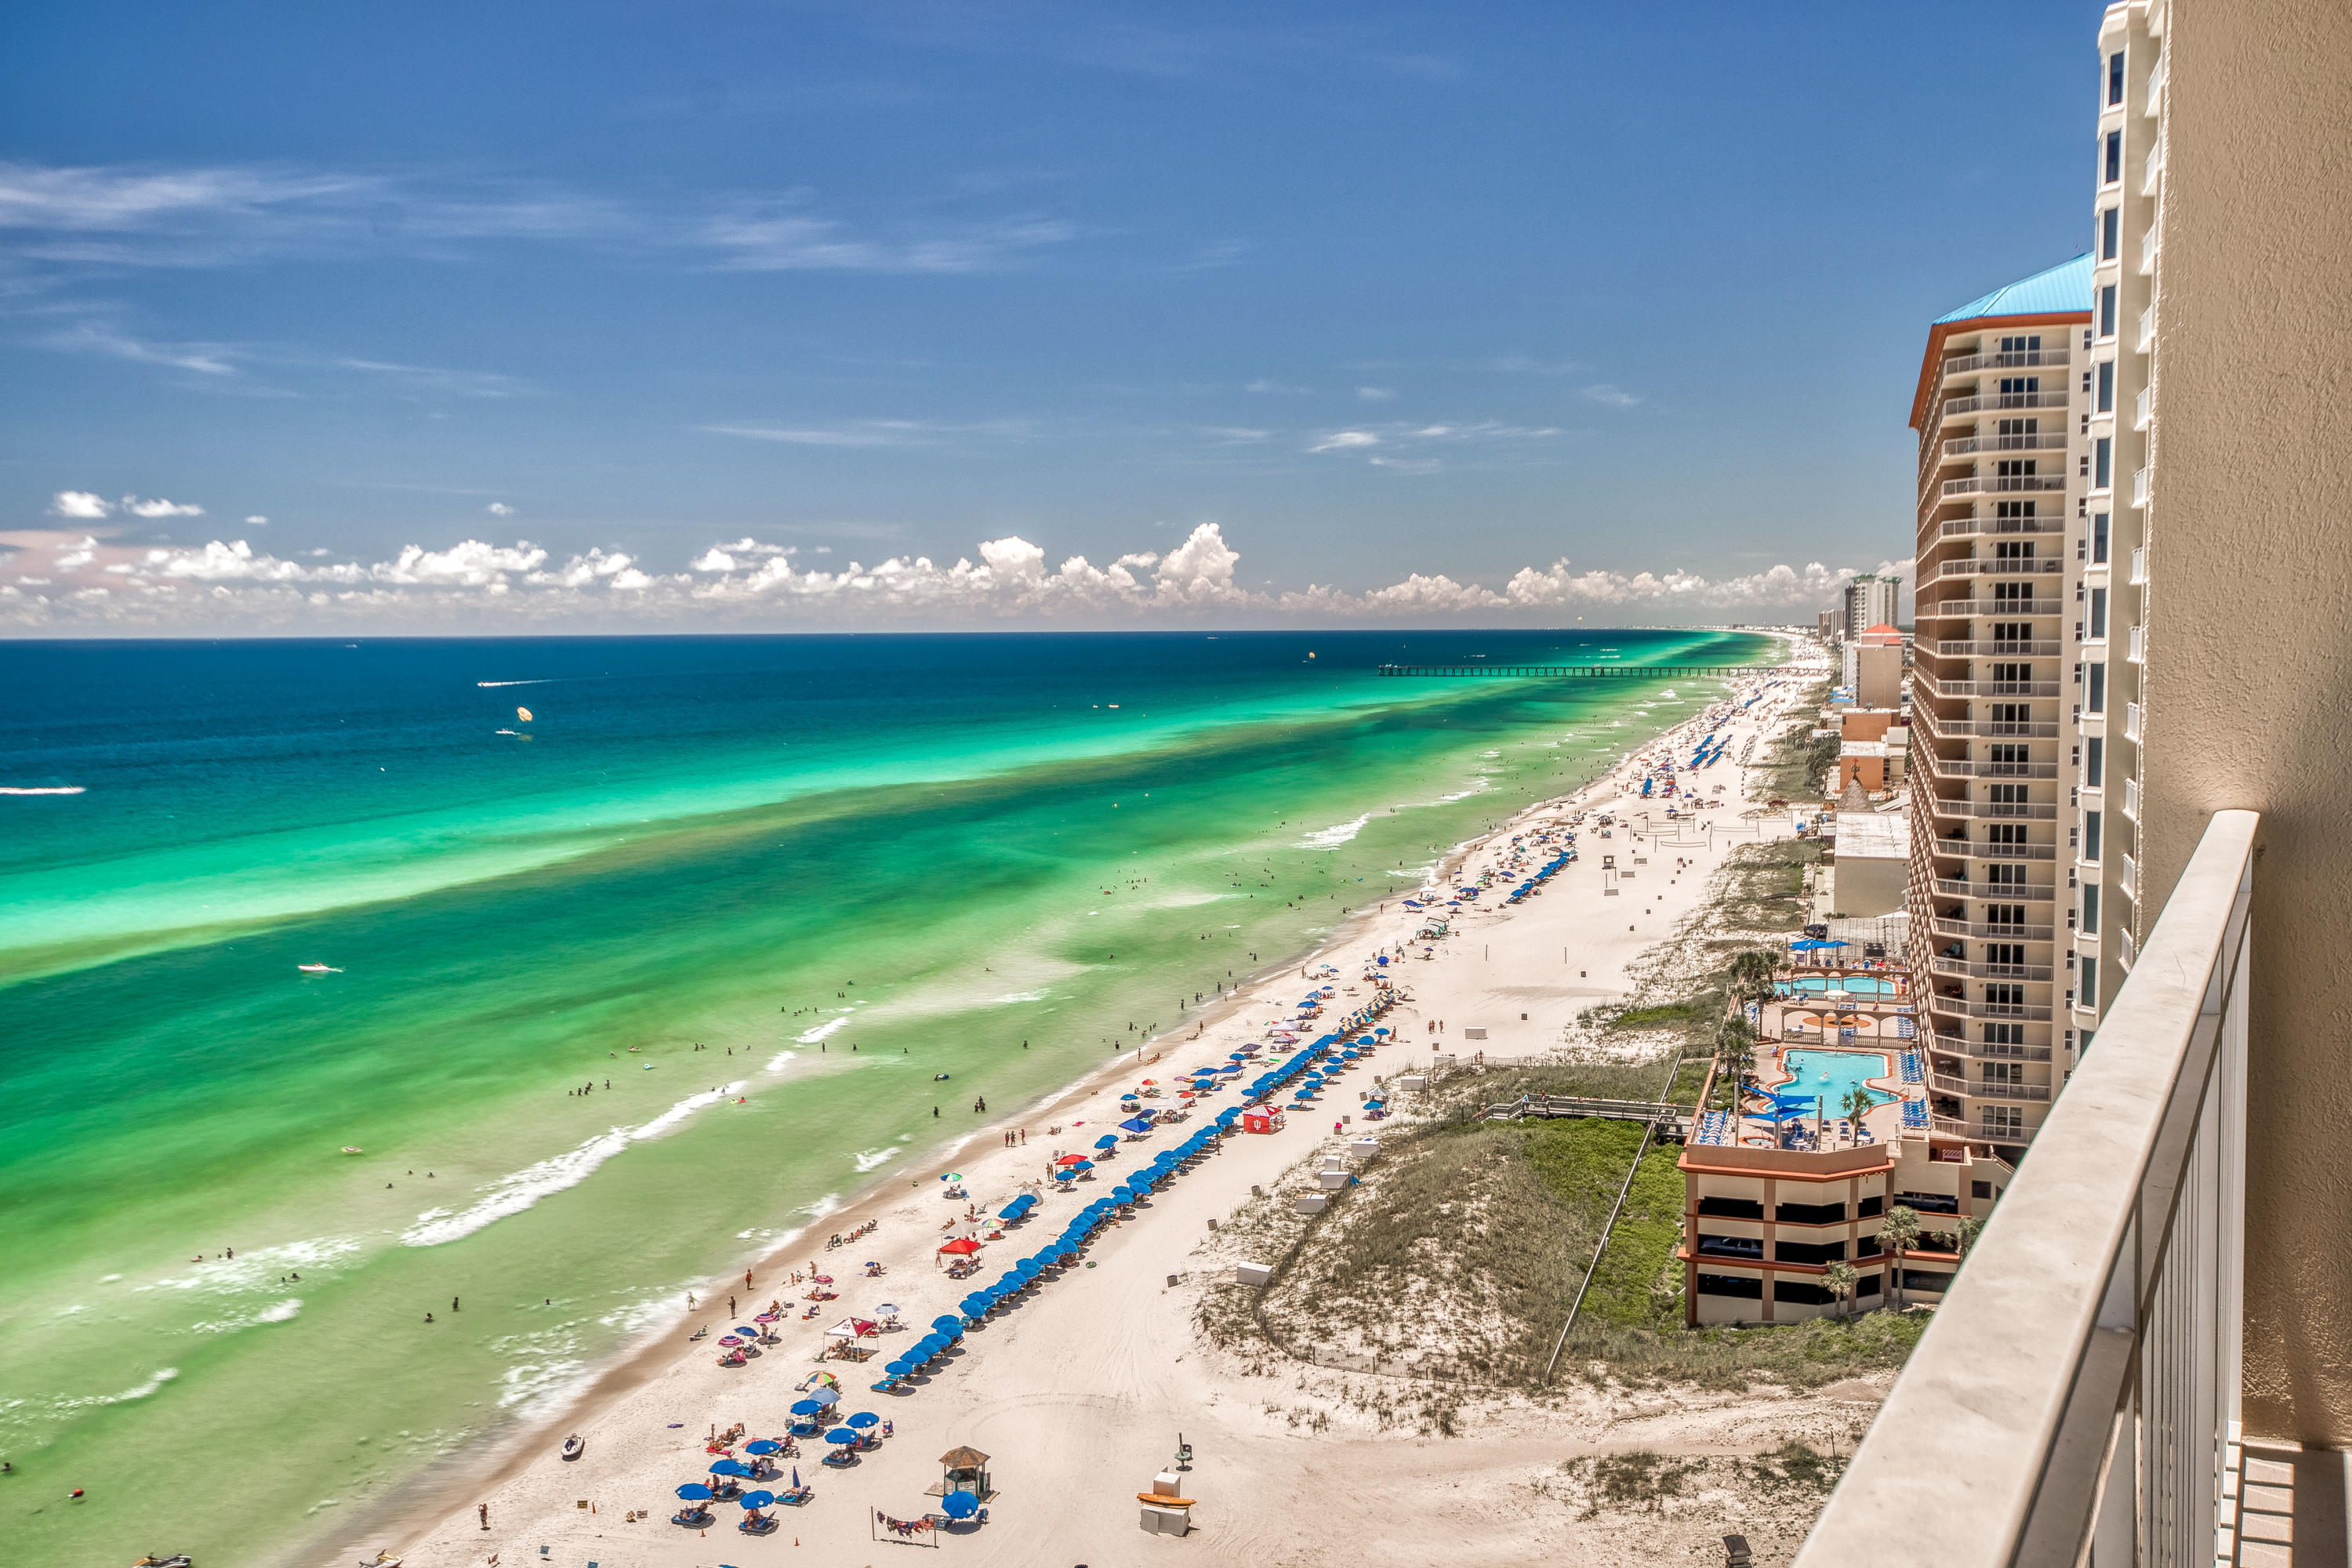 Take a peek at the BEST PRICE on a 2007+ built gulf front condo on the west end of Panama City Beach, Florida near Pier Park! This is a great opportunity to get in on a fantastic property with great income potential.  This one bedroom, one bathroom condo with bunks offers a generous floor plan that easily accommodates 6 people. This condo boasts tremendous views from its 18th floor perch and is sure to impress. The property is also being offered FULLY FURNISHED and ready for rental. Emerald Beach Resort offers a stellar location only 1.5 miles east of Pier Park and has a wide array of amenities to offer. Amenities including a large gym, multiple pools, hot tubs, splash area for kids, tiki bar, Starbuck's, gift shop, covered parking & an exquisite ''SKY LOUNGE'' offering cocktails and more!